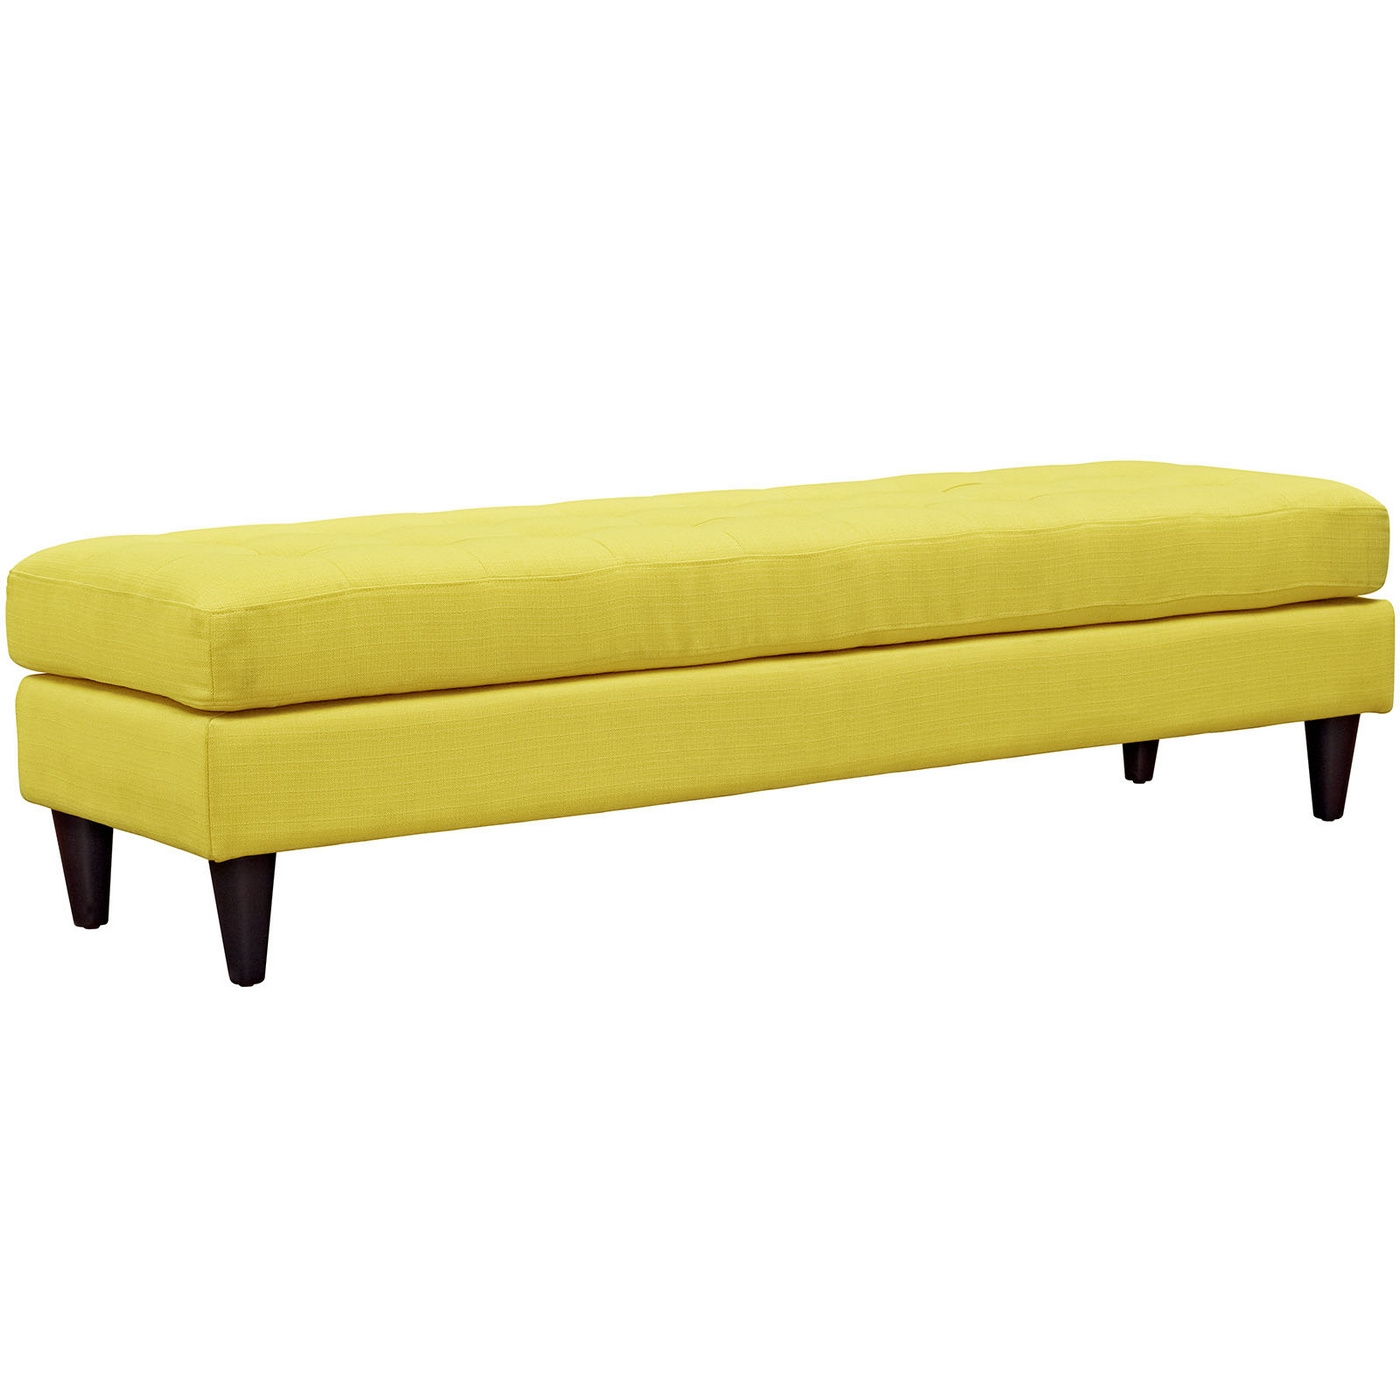 Empress Mid Century Modern Bench With Button Tufted Upholstery Sunny